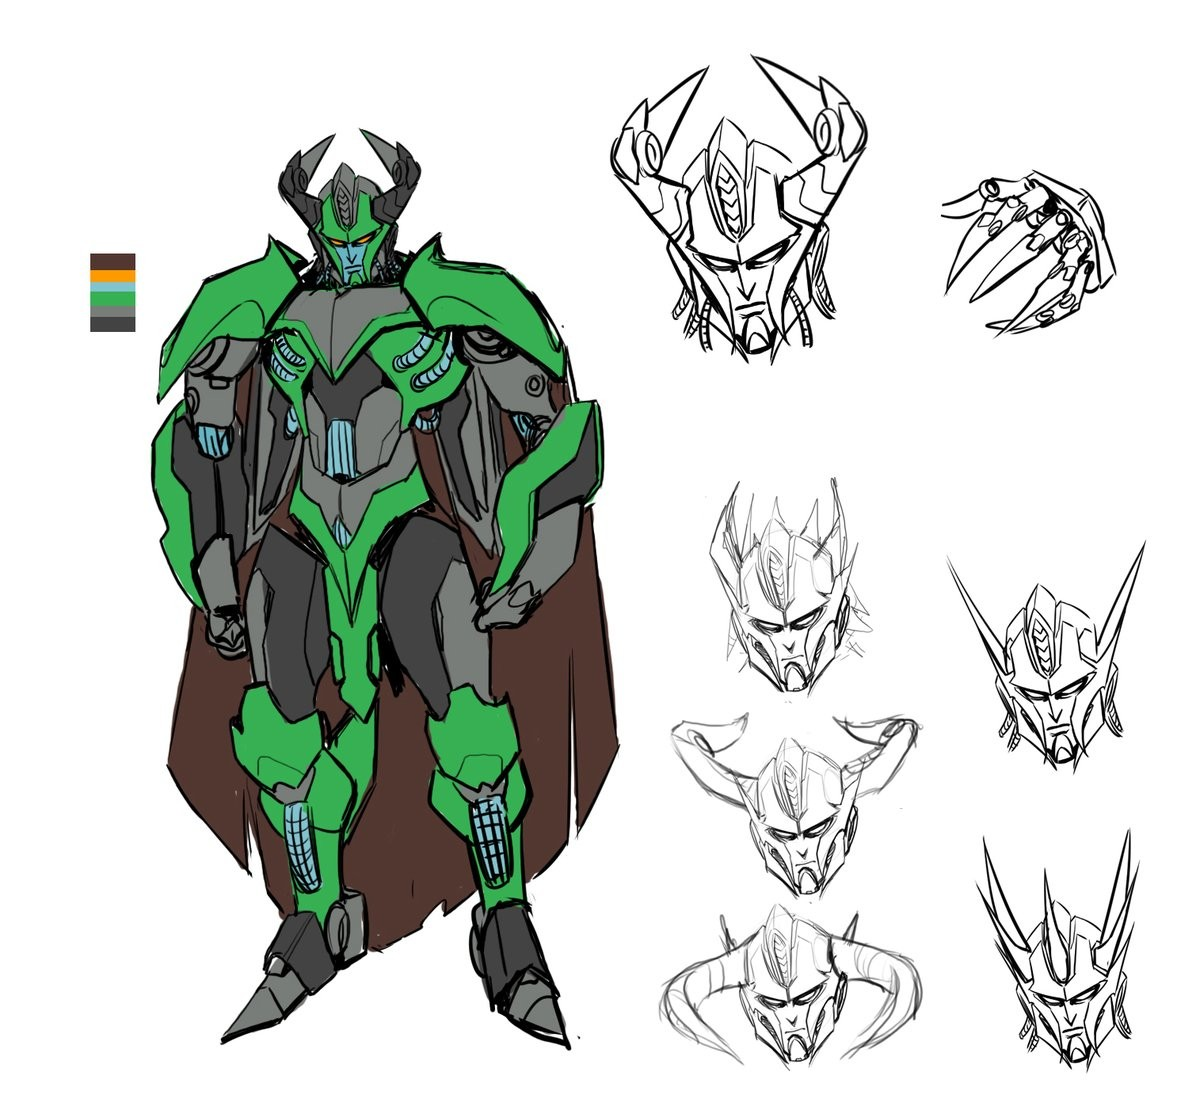 Transformers News: IDW Transformers: Till All Are One Liege Maximo Design by Sara Pitre Durocher